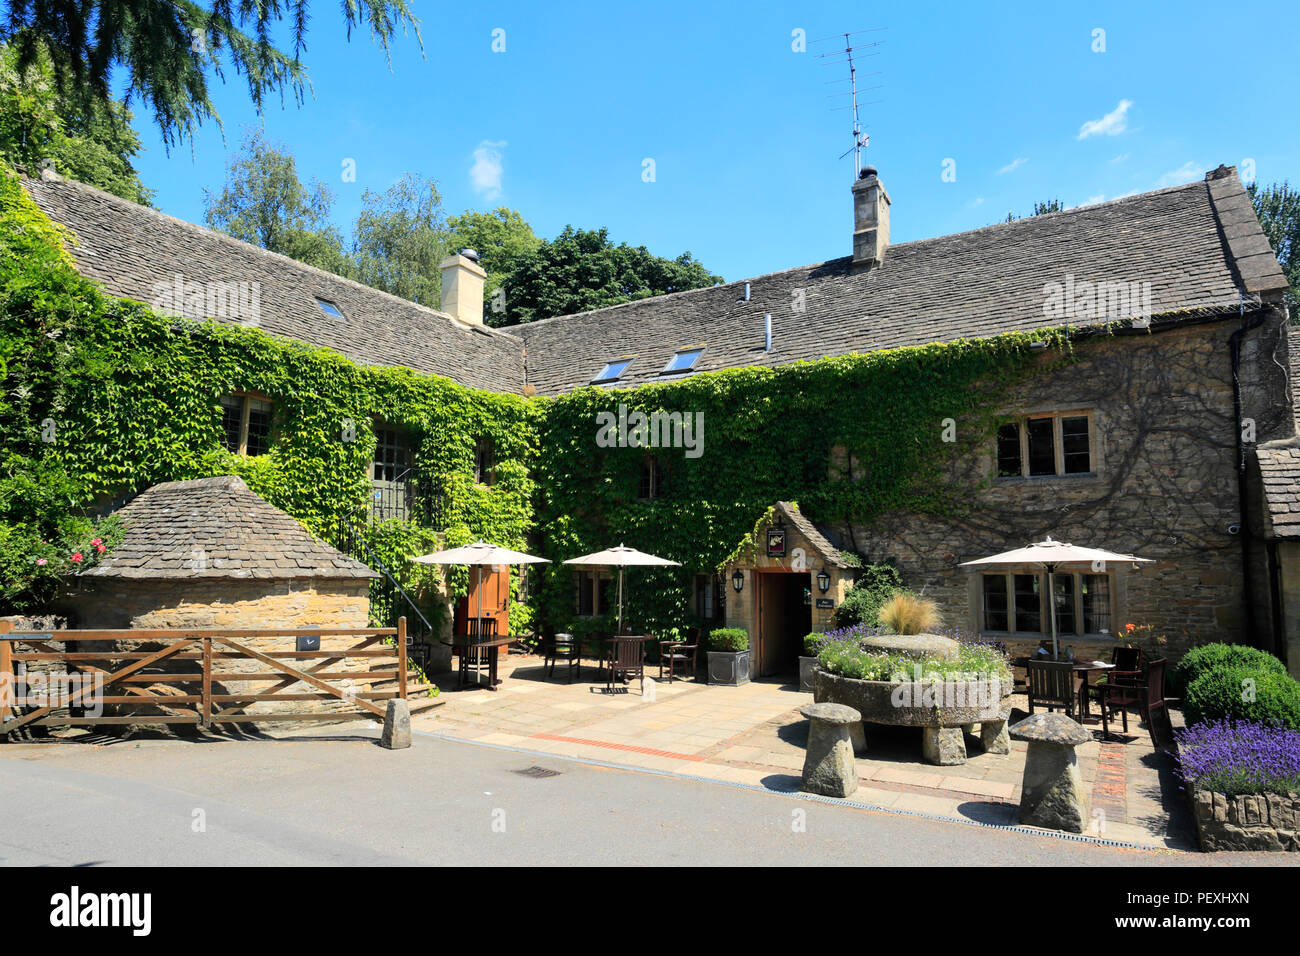 The Slaughters Country Inn Hotel, Lower Slaughter village